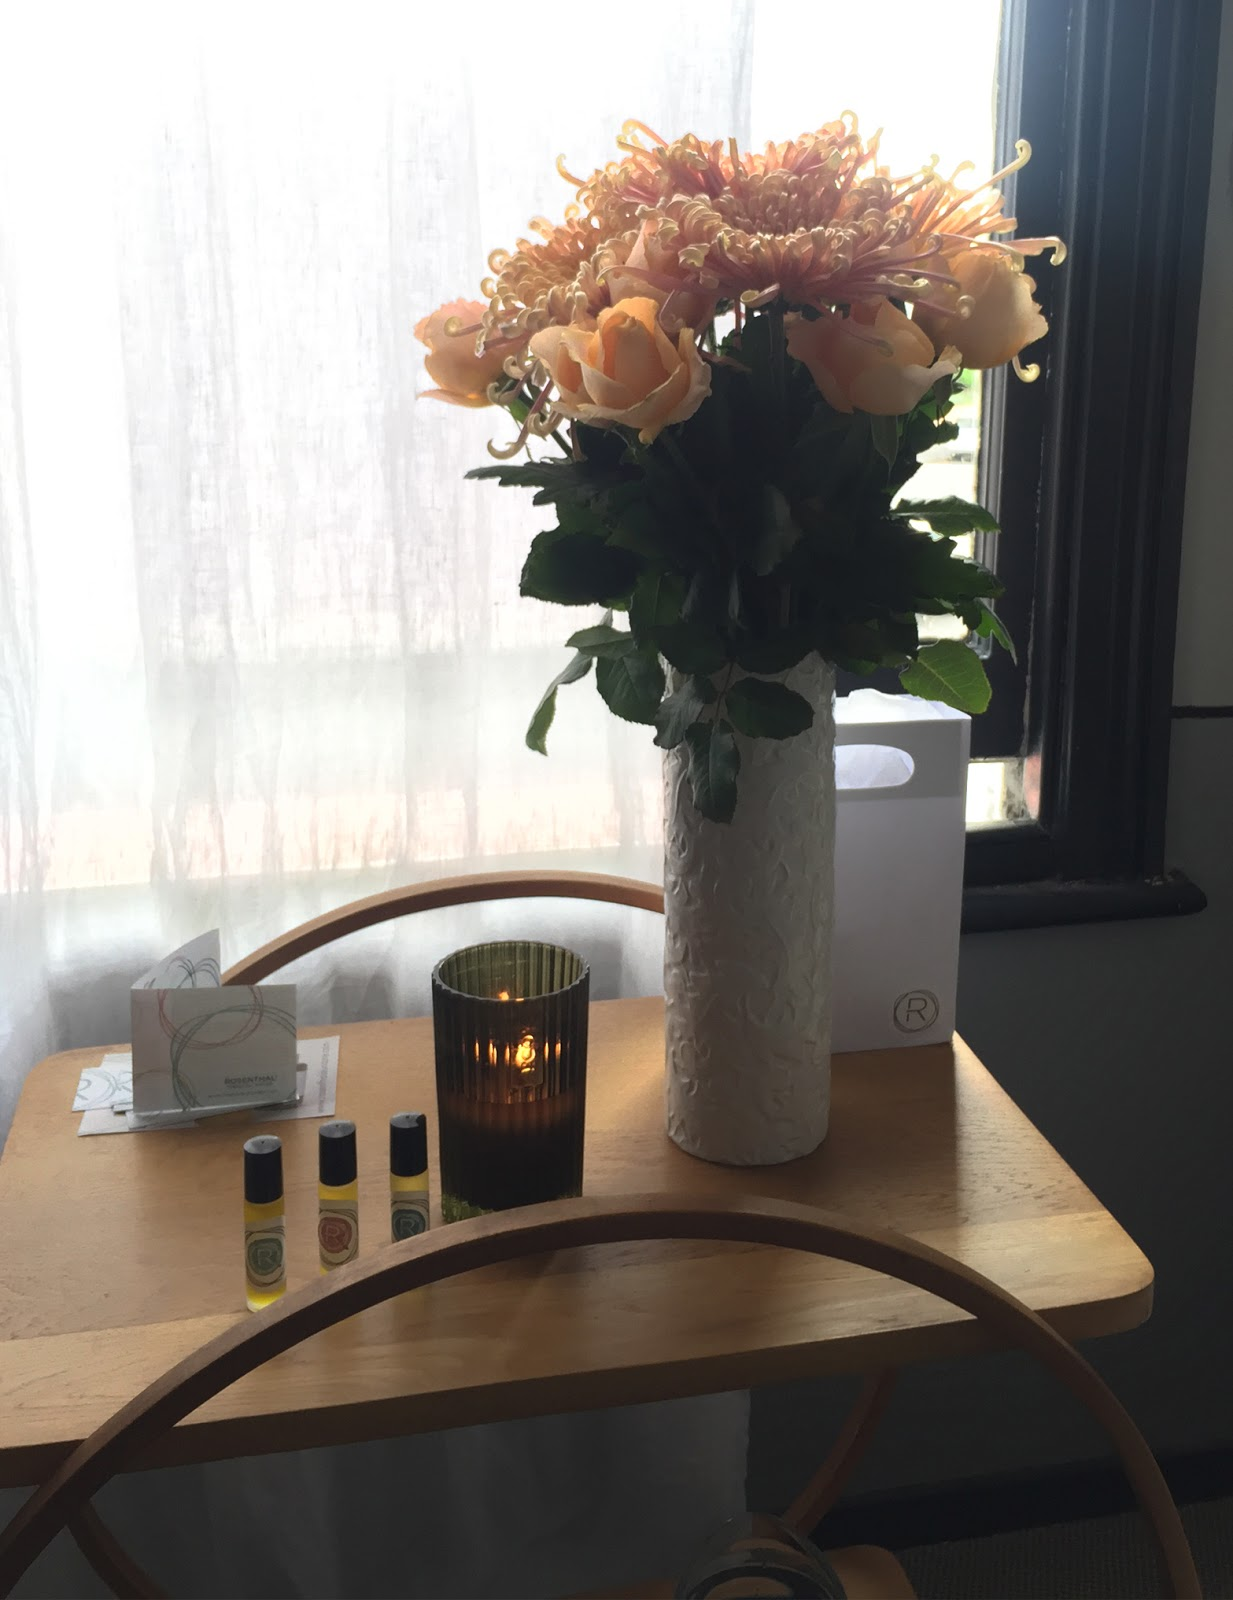 MY ROSENTHAL RADIANCE FACIAL EXPERIENCE - CassandraMyee